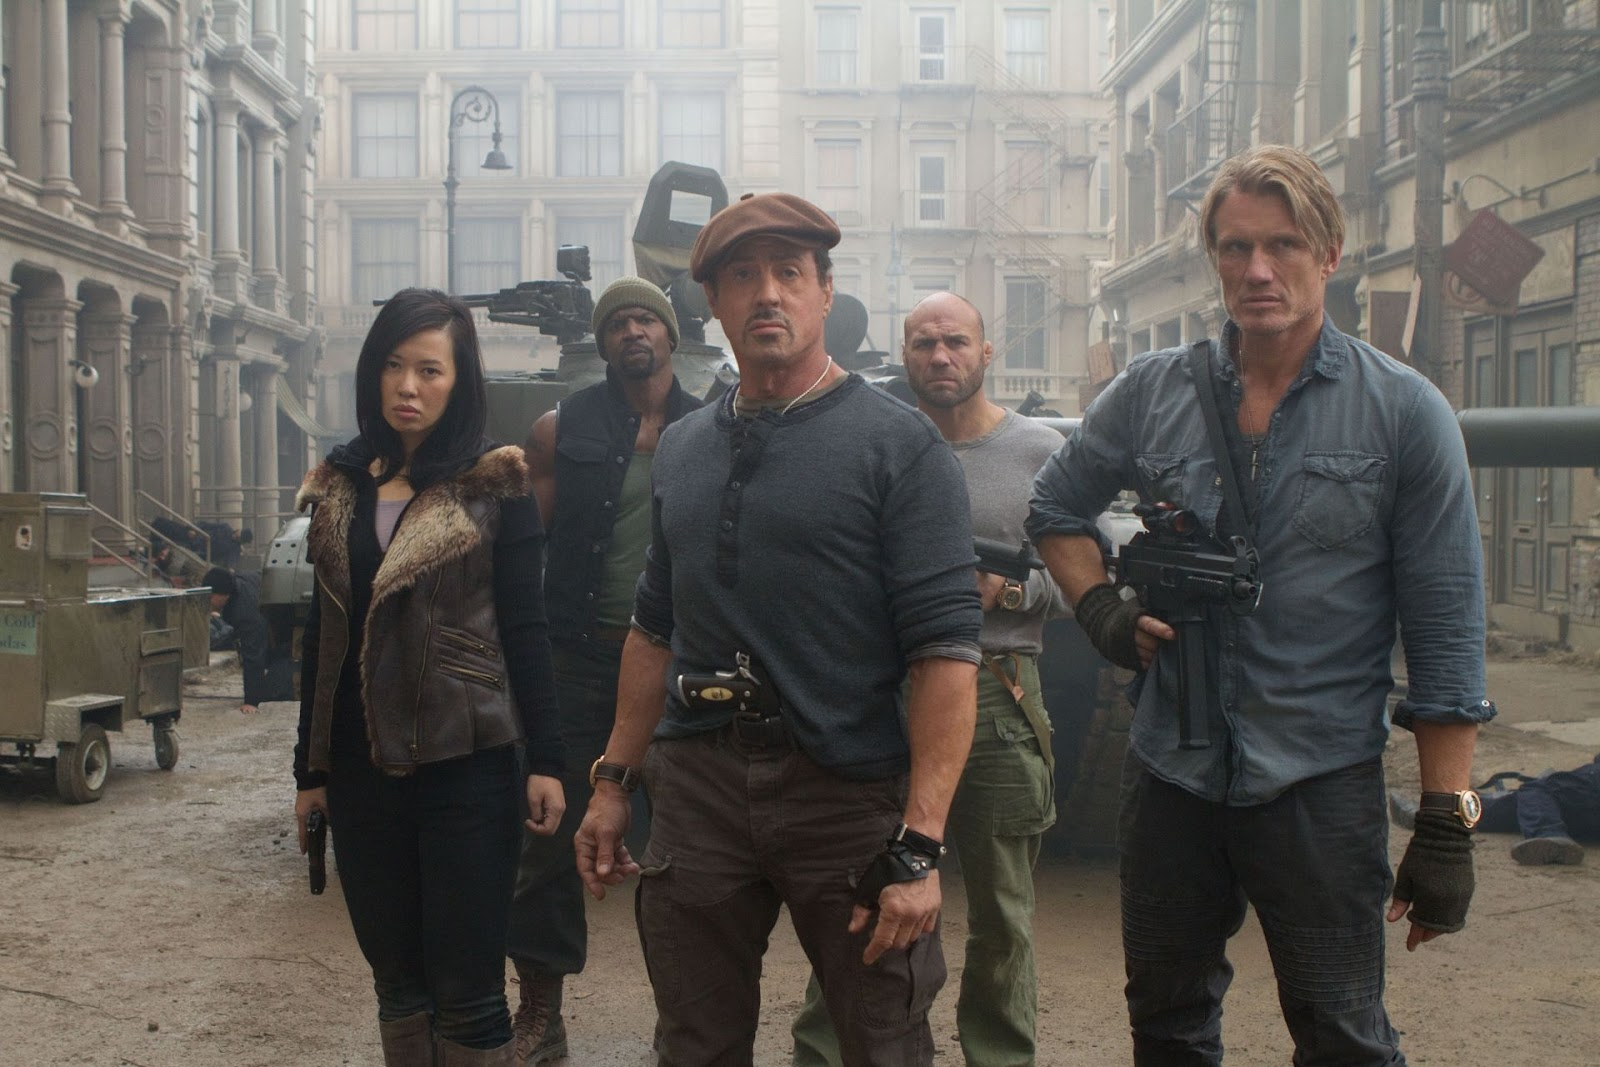 Sylvester Stallone Expendables 2